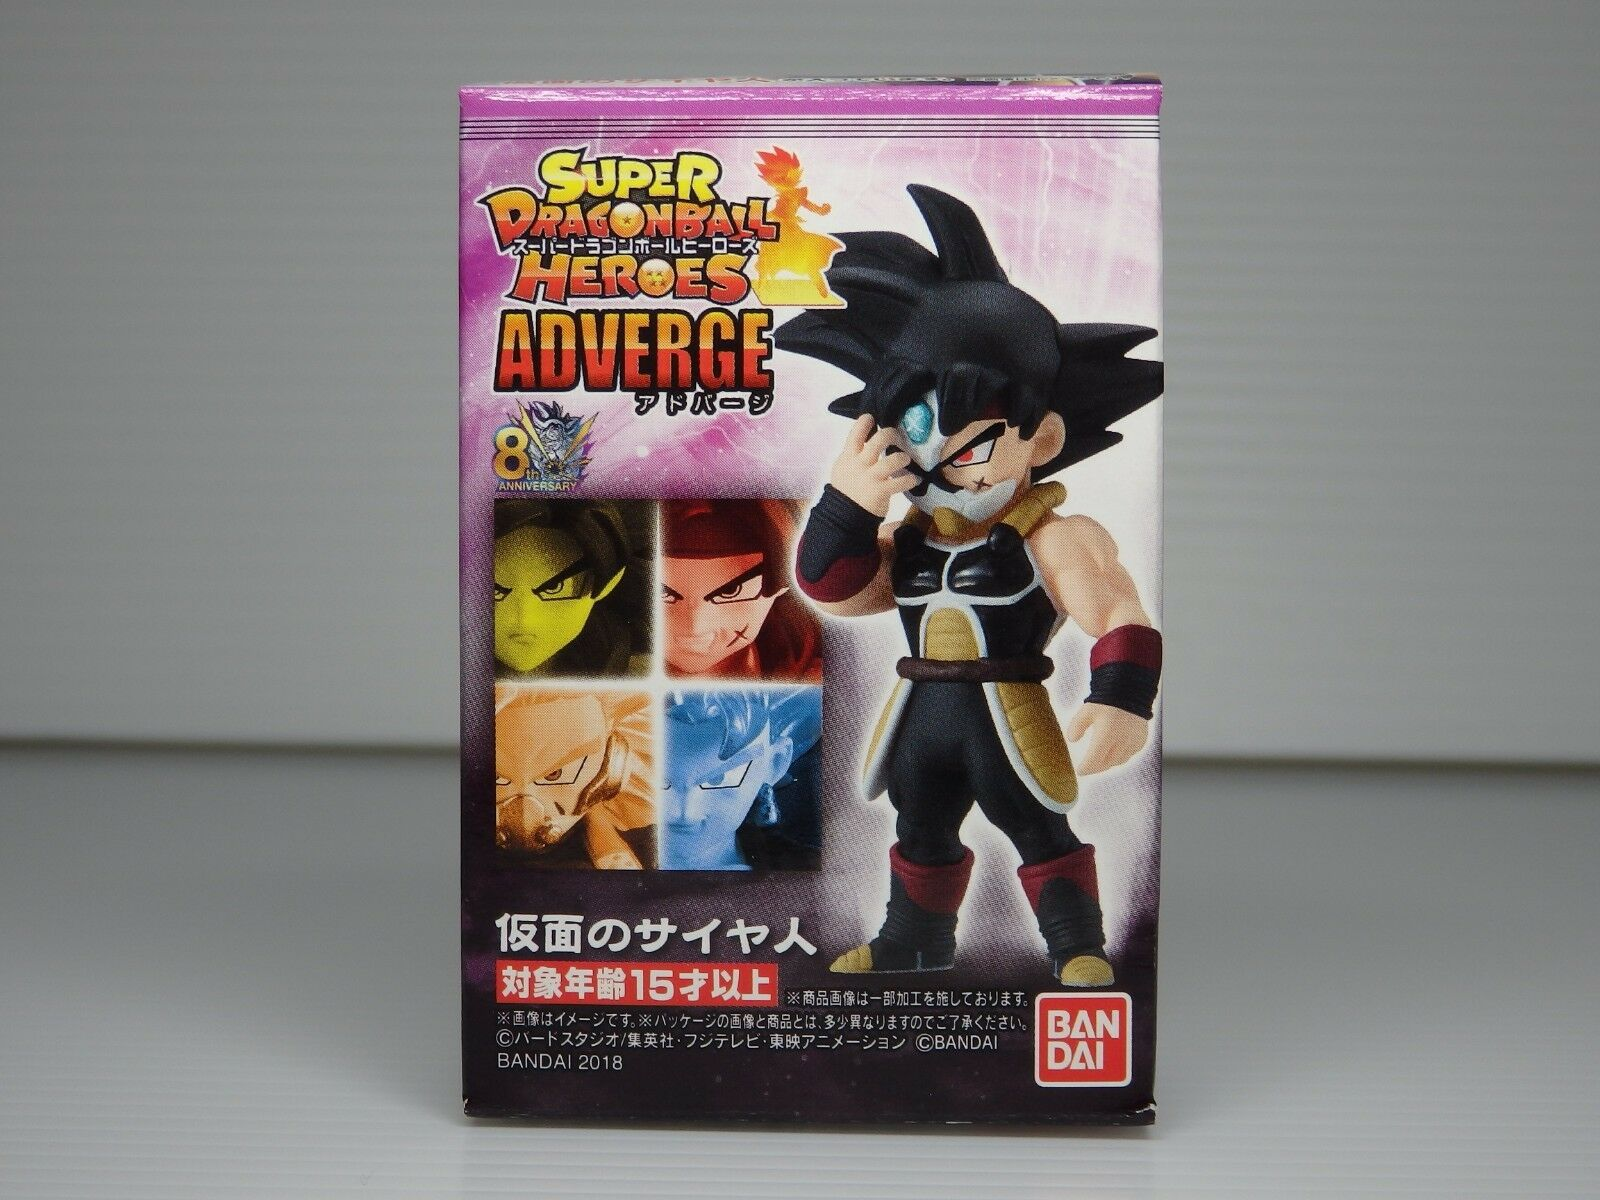 Super Dragon Ball Heroes - Adverge - Saiyajin Mascarado - Banda